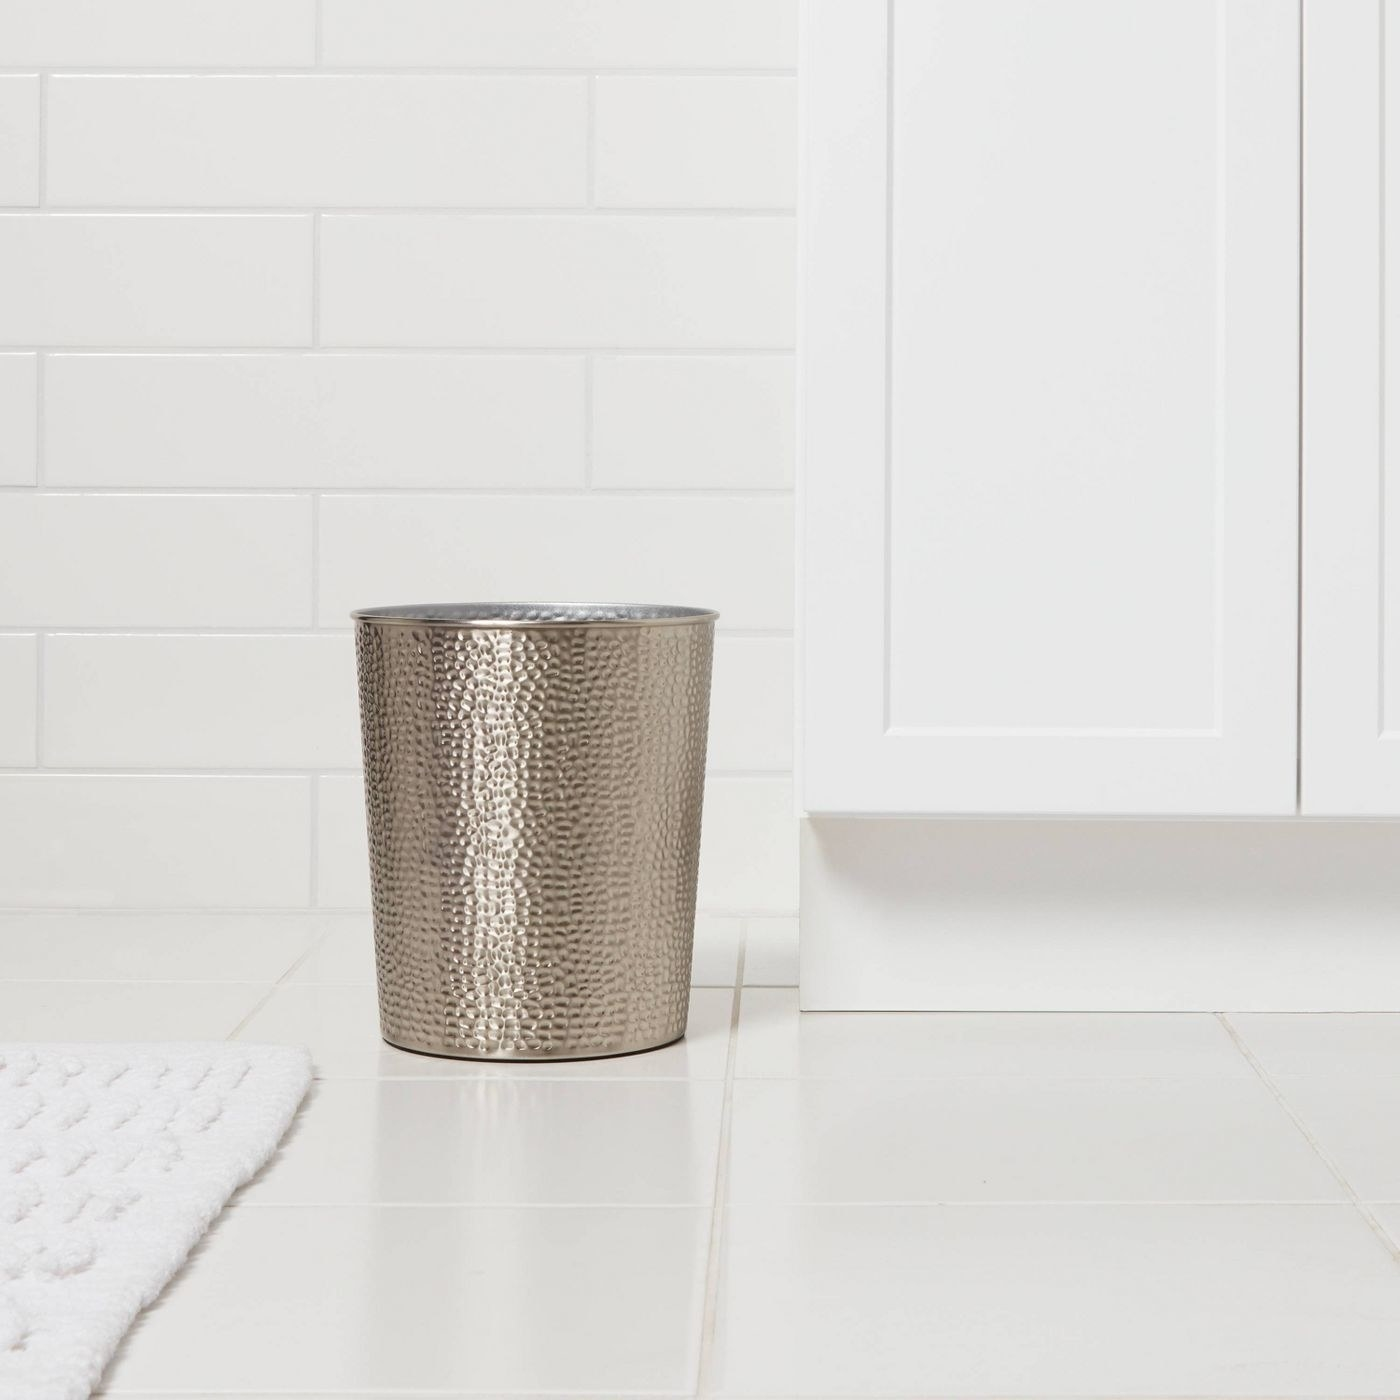 Silver trashcan on a white floor beside a white cabinet